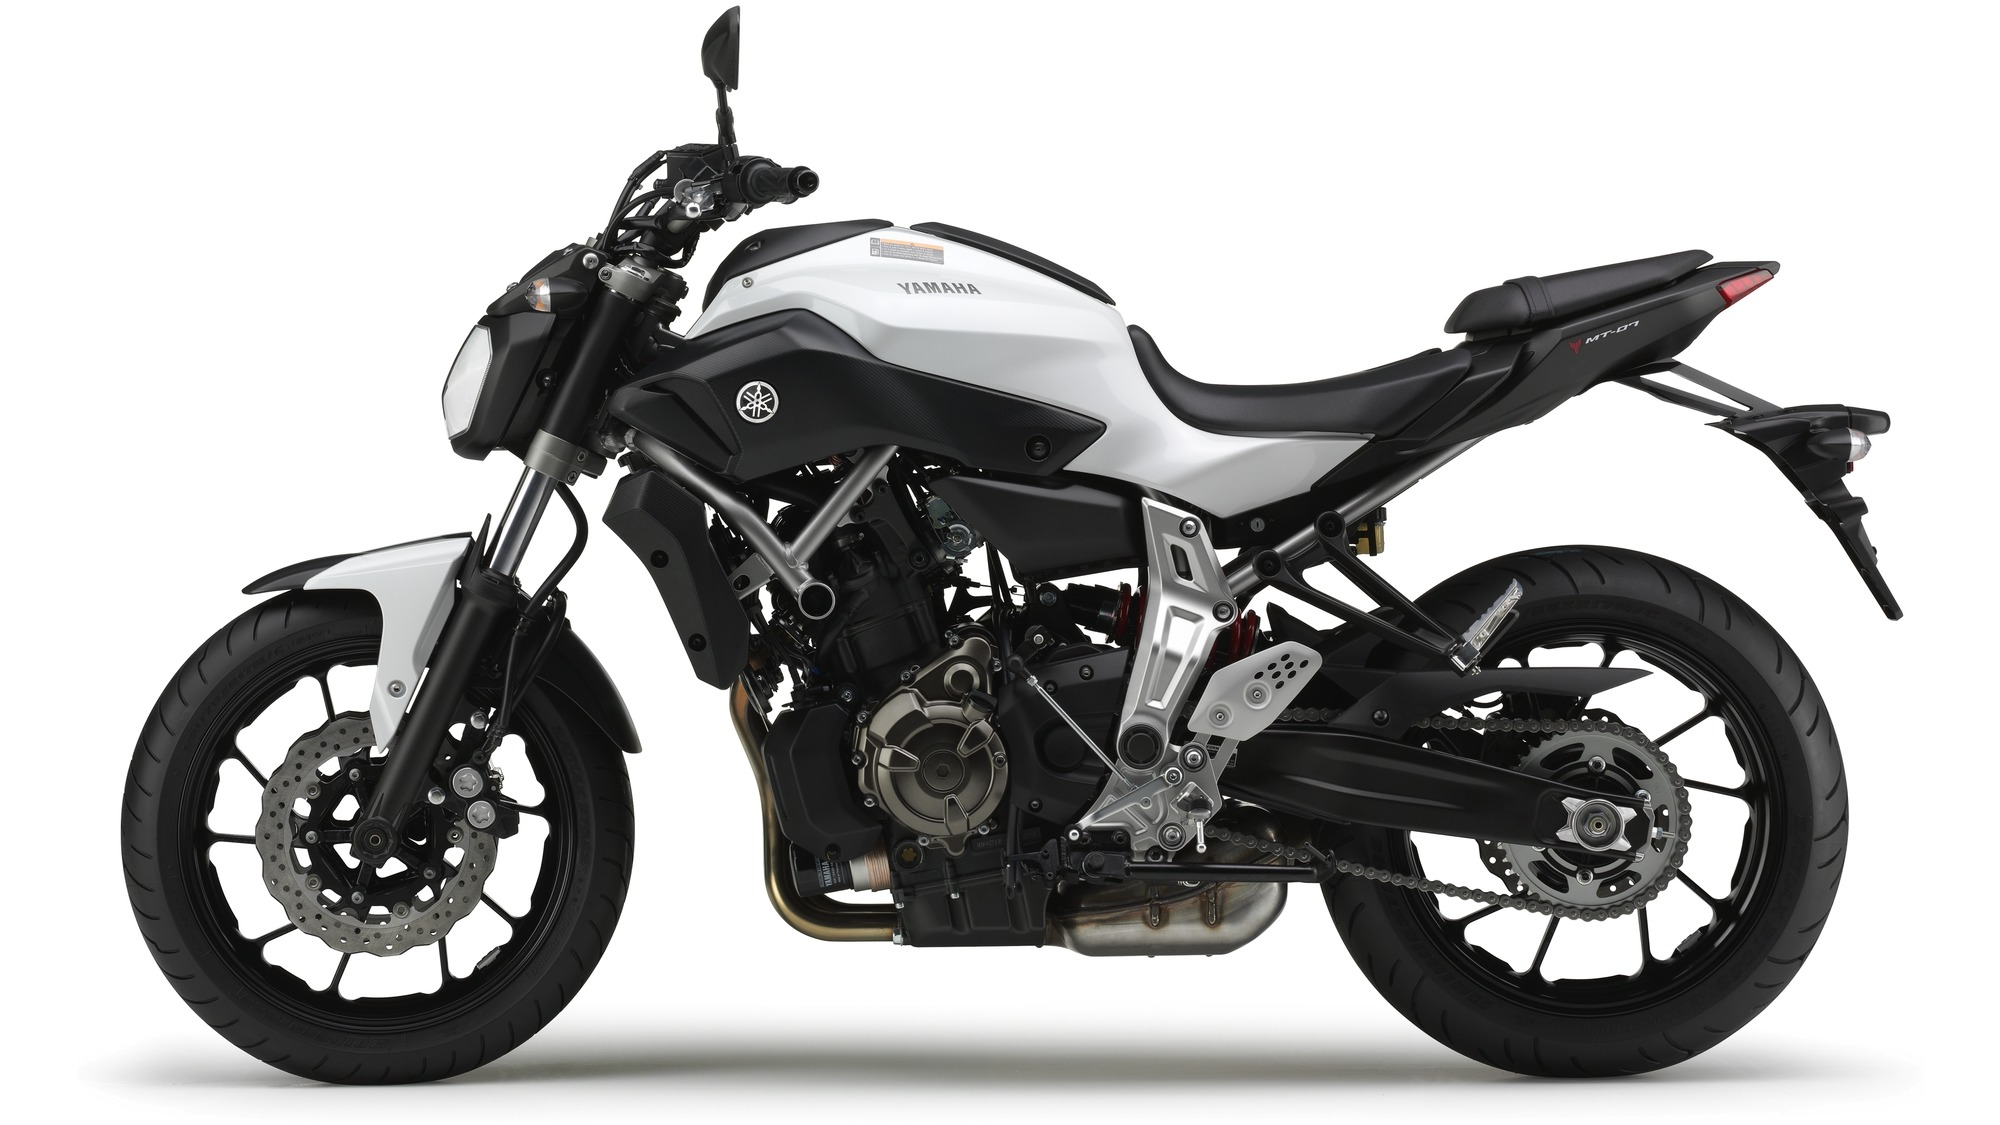 yamaha mt 07 la troisi me mt officiellement annonc e motoroadmotoroad. Black Bedroom Furniture Sets. Home Design Ideas